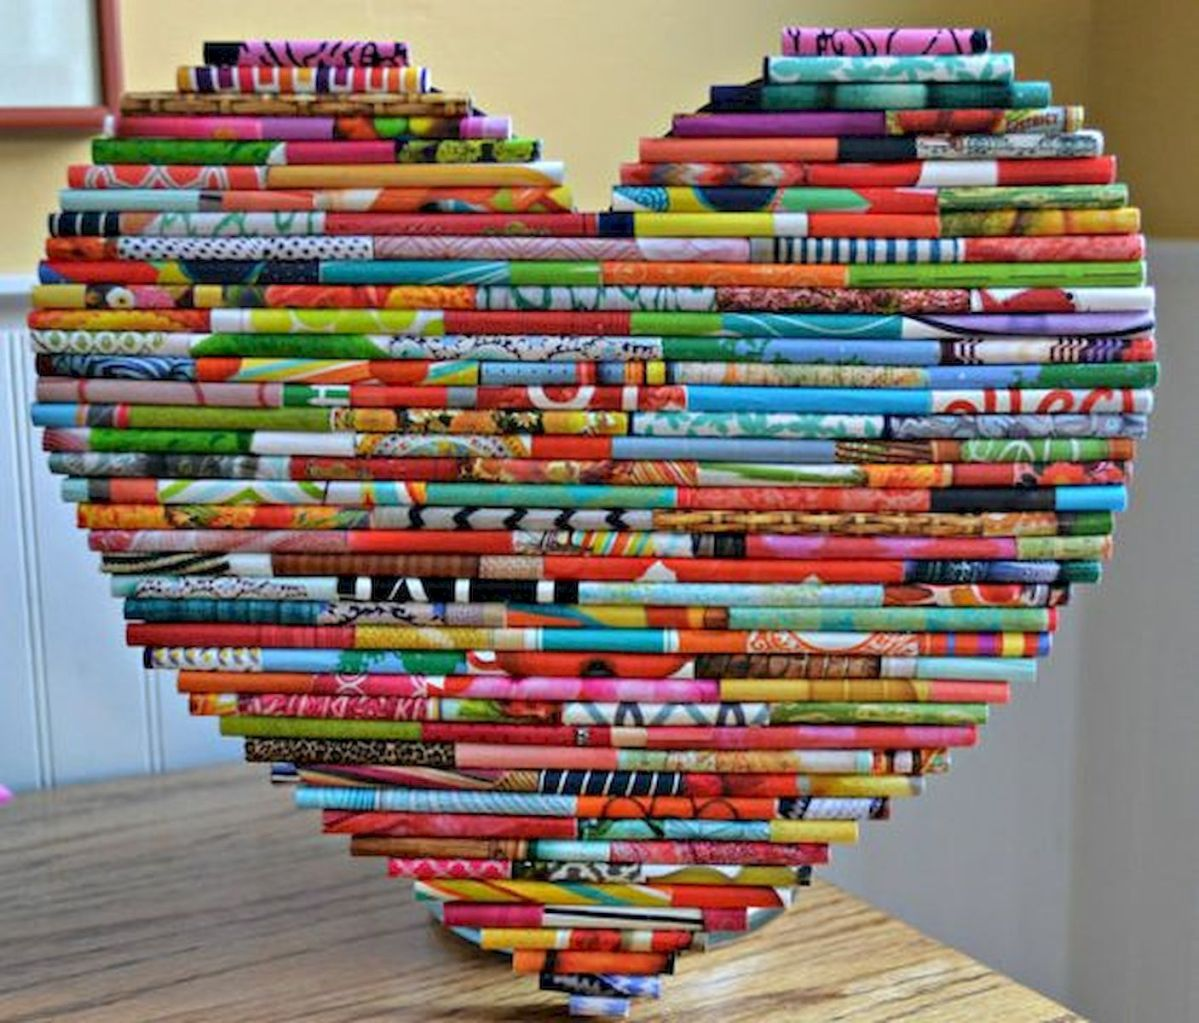 65 Stunning DIY Recycled and Upcycling Projects Ideas (49)